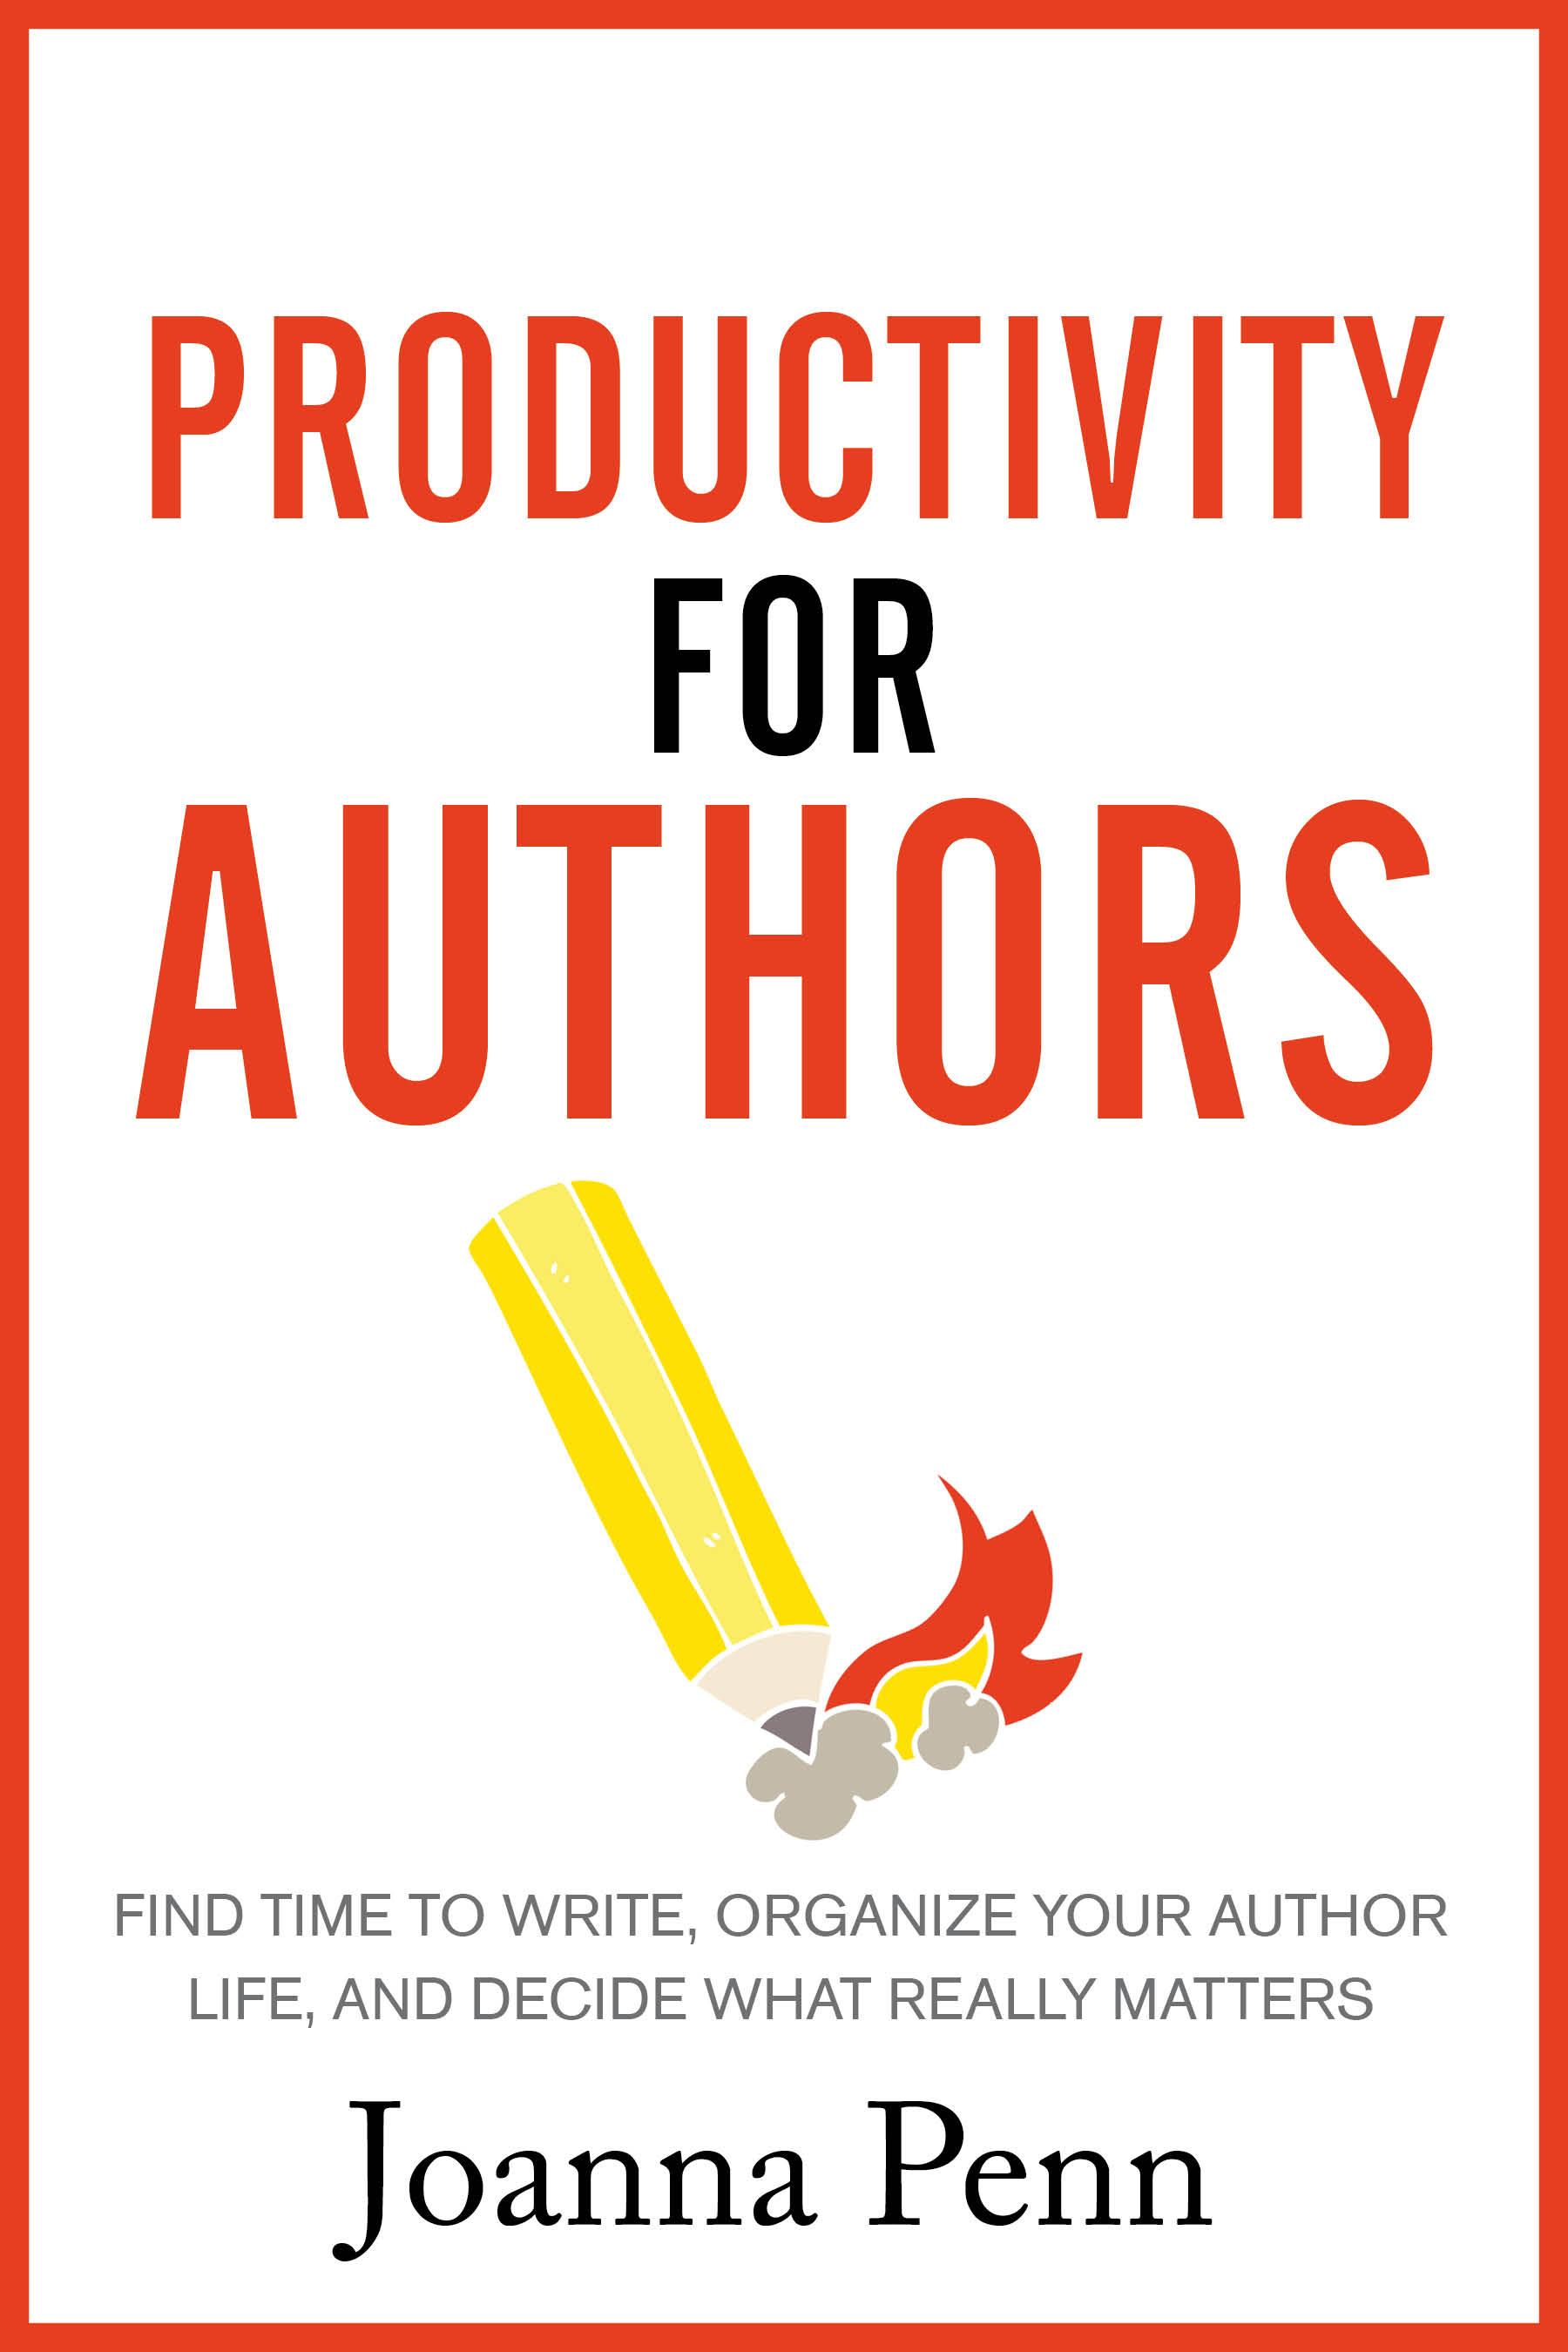 Productivity for Authors by Joanna Penn